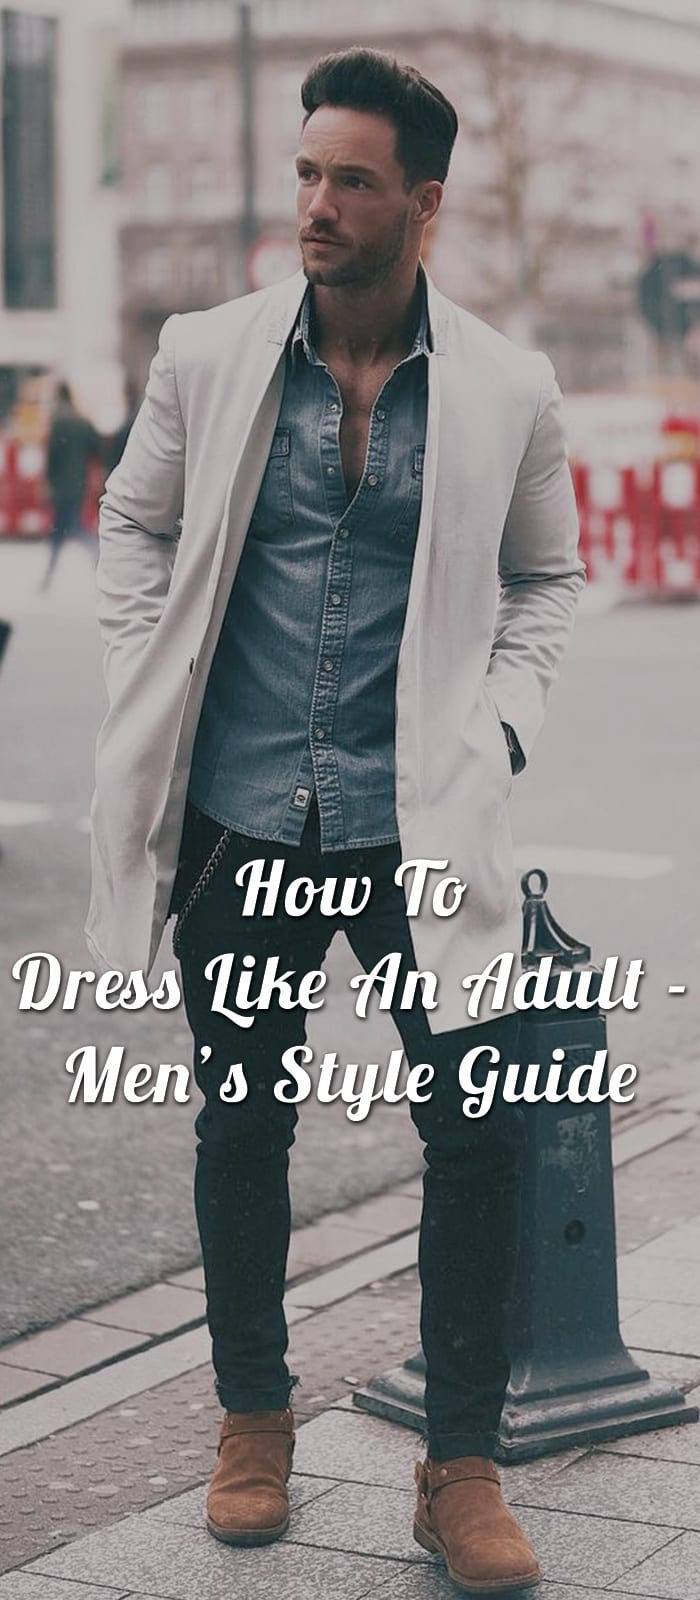 How To Dress Like An Adult - Men's Style Guide